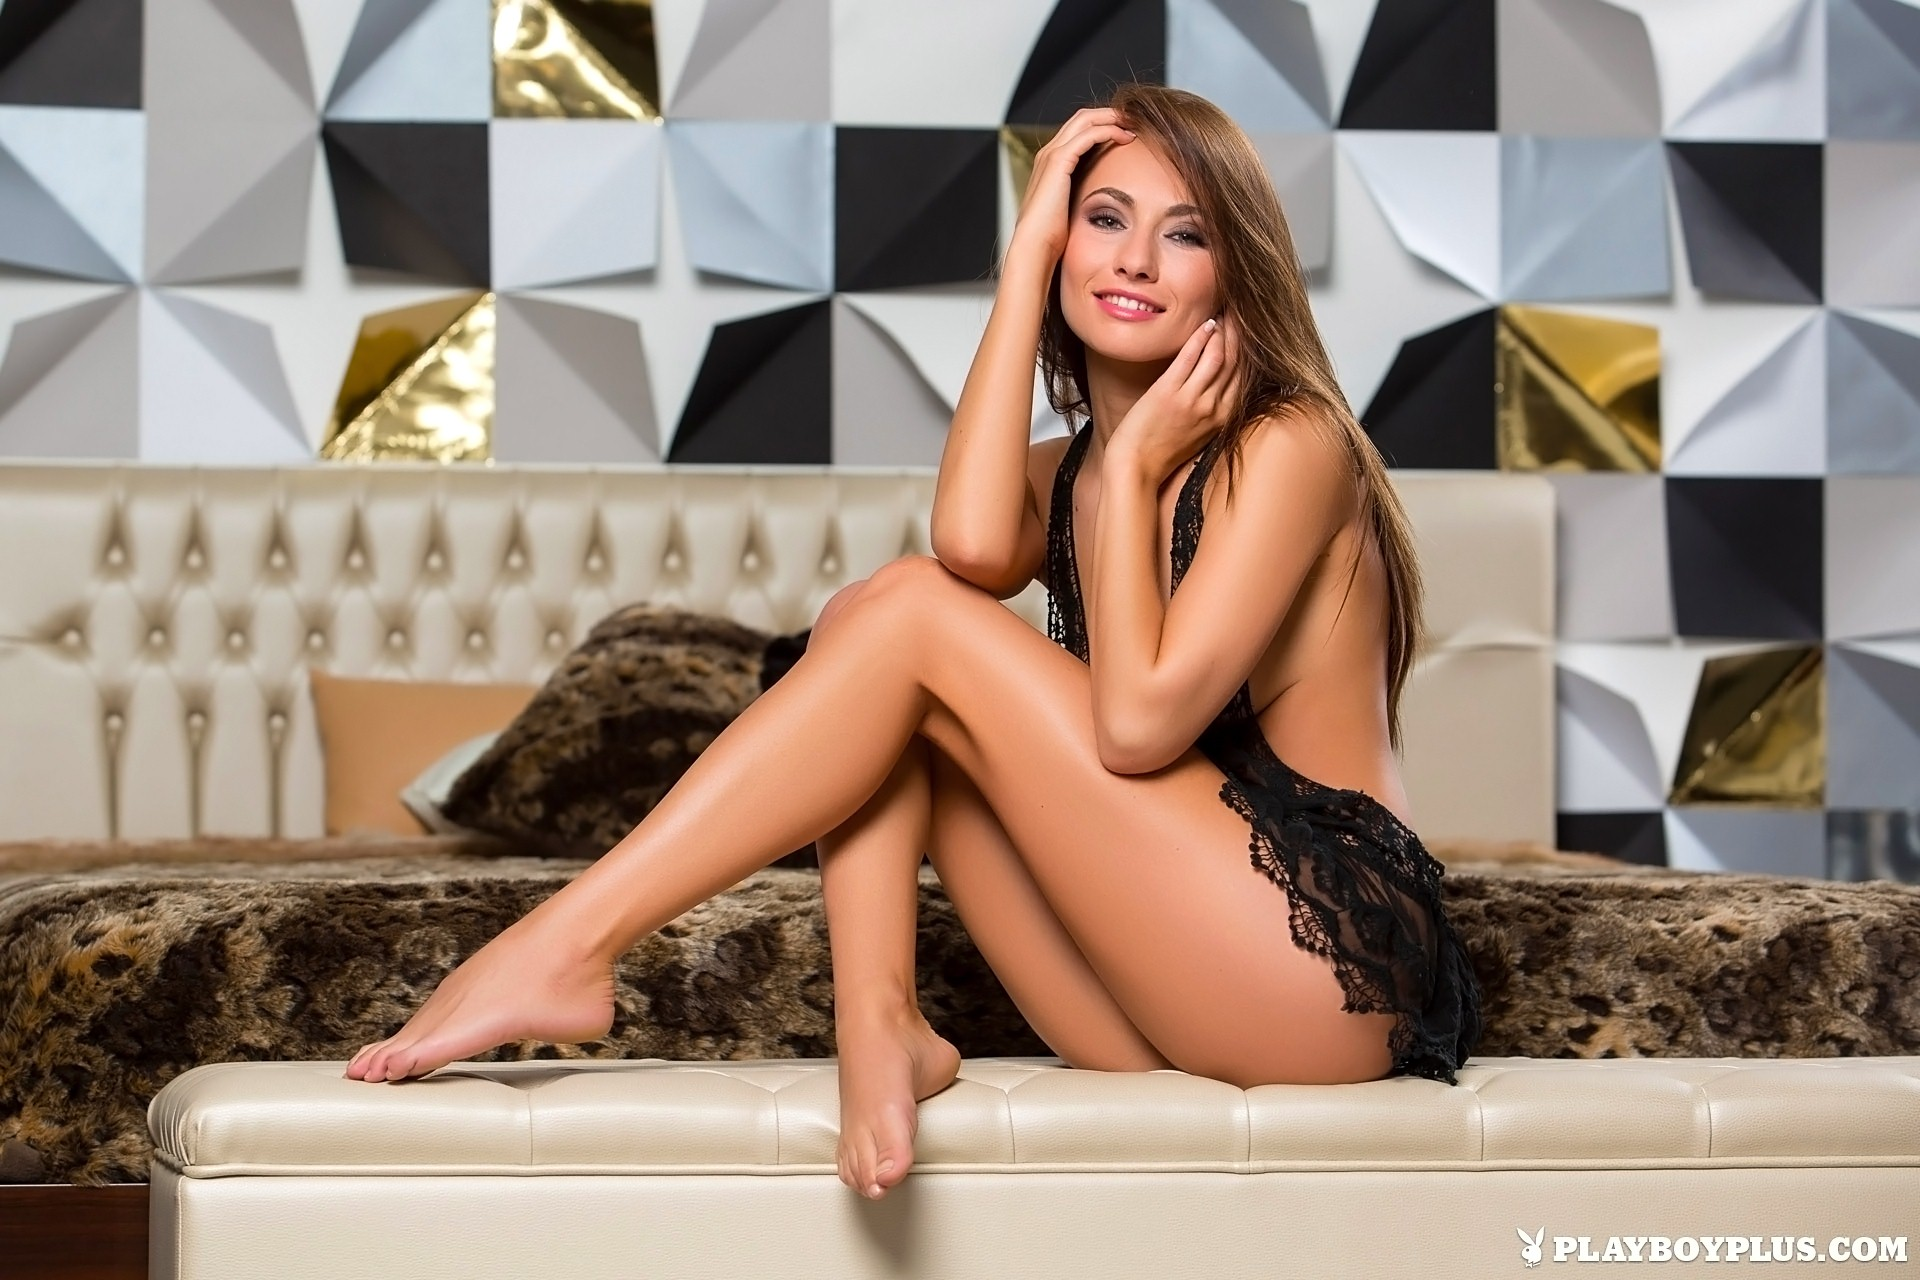 Michaela Isizzu nude in Gotta Have It for Playboy | Daily Girls @ Female Update